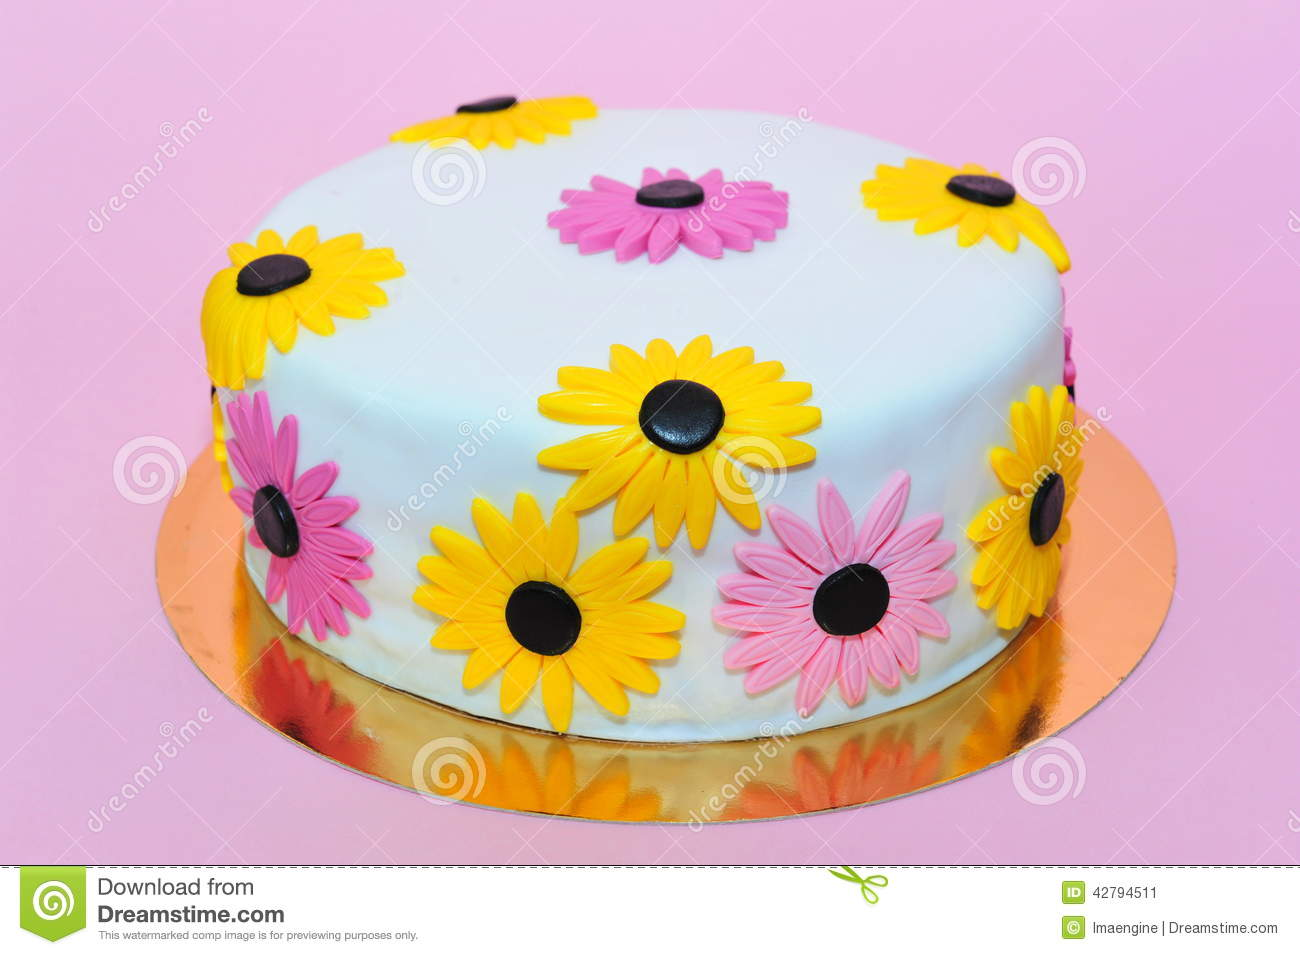 Yellow Daisies Birthday Cake Stock Image Image Of Celebration